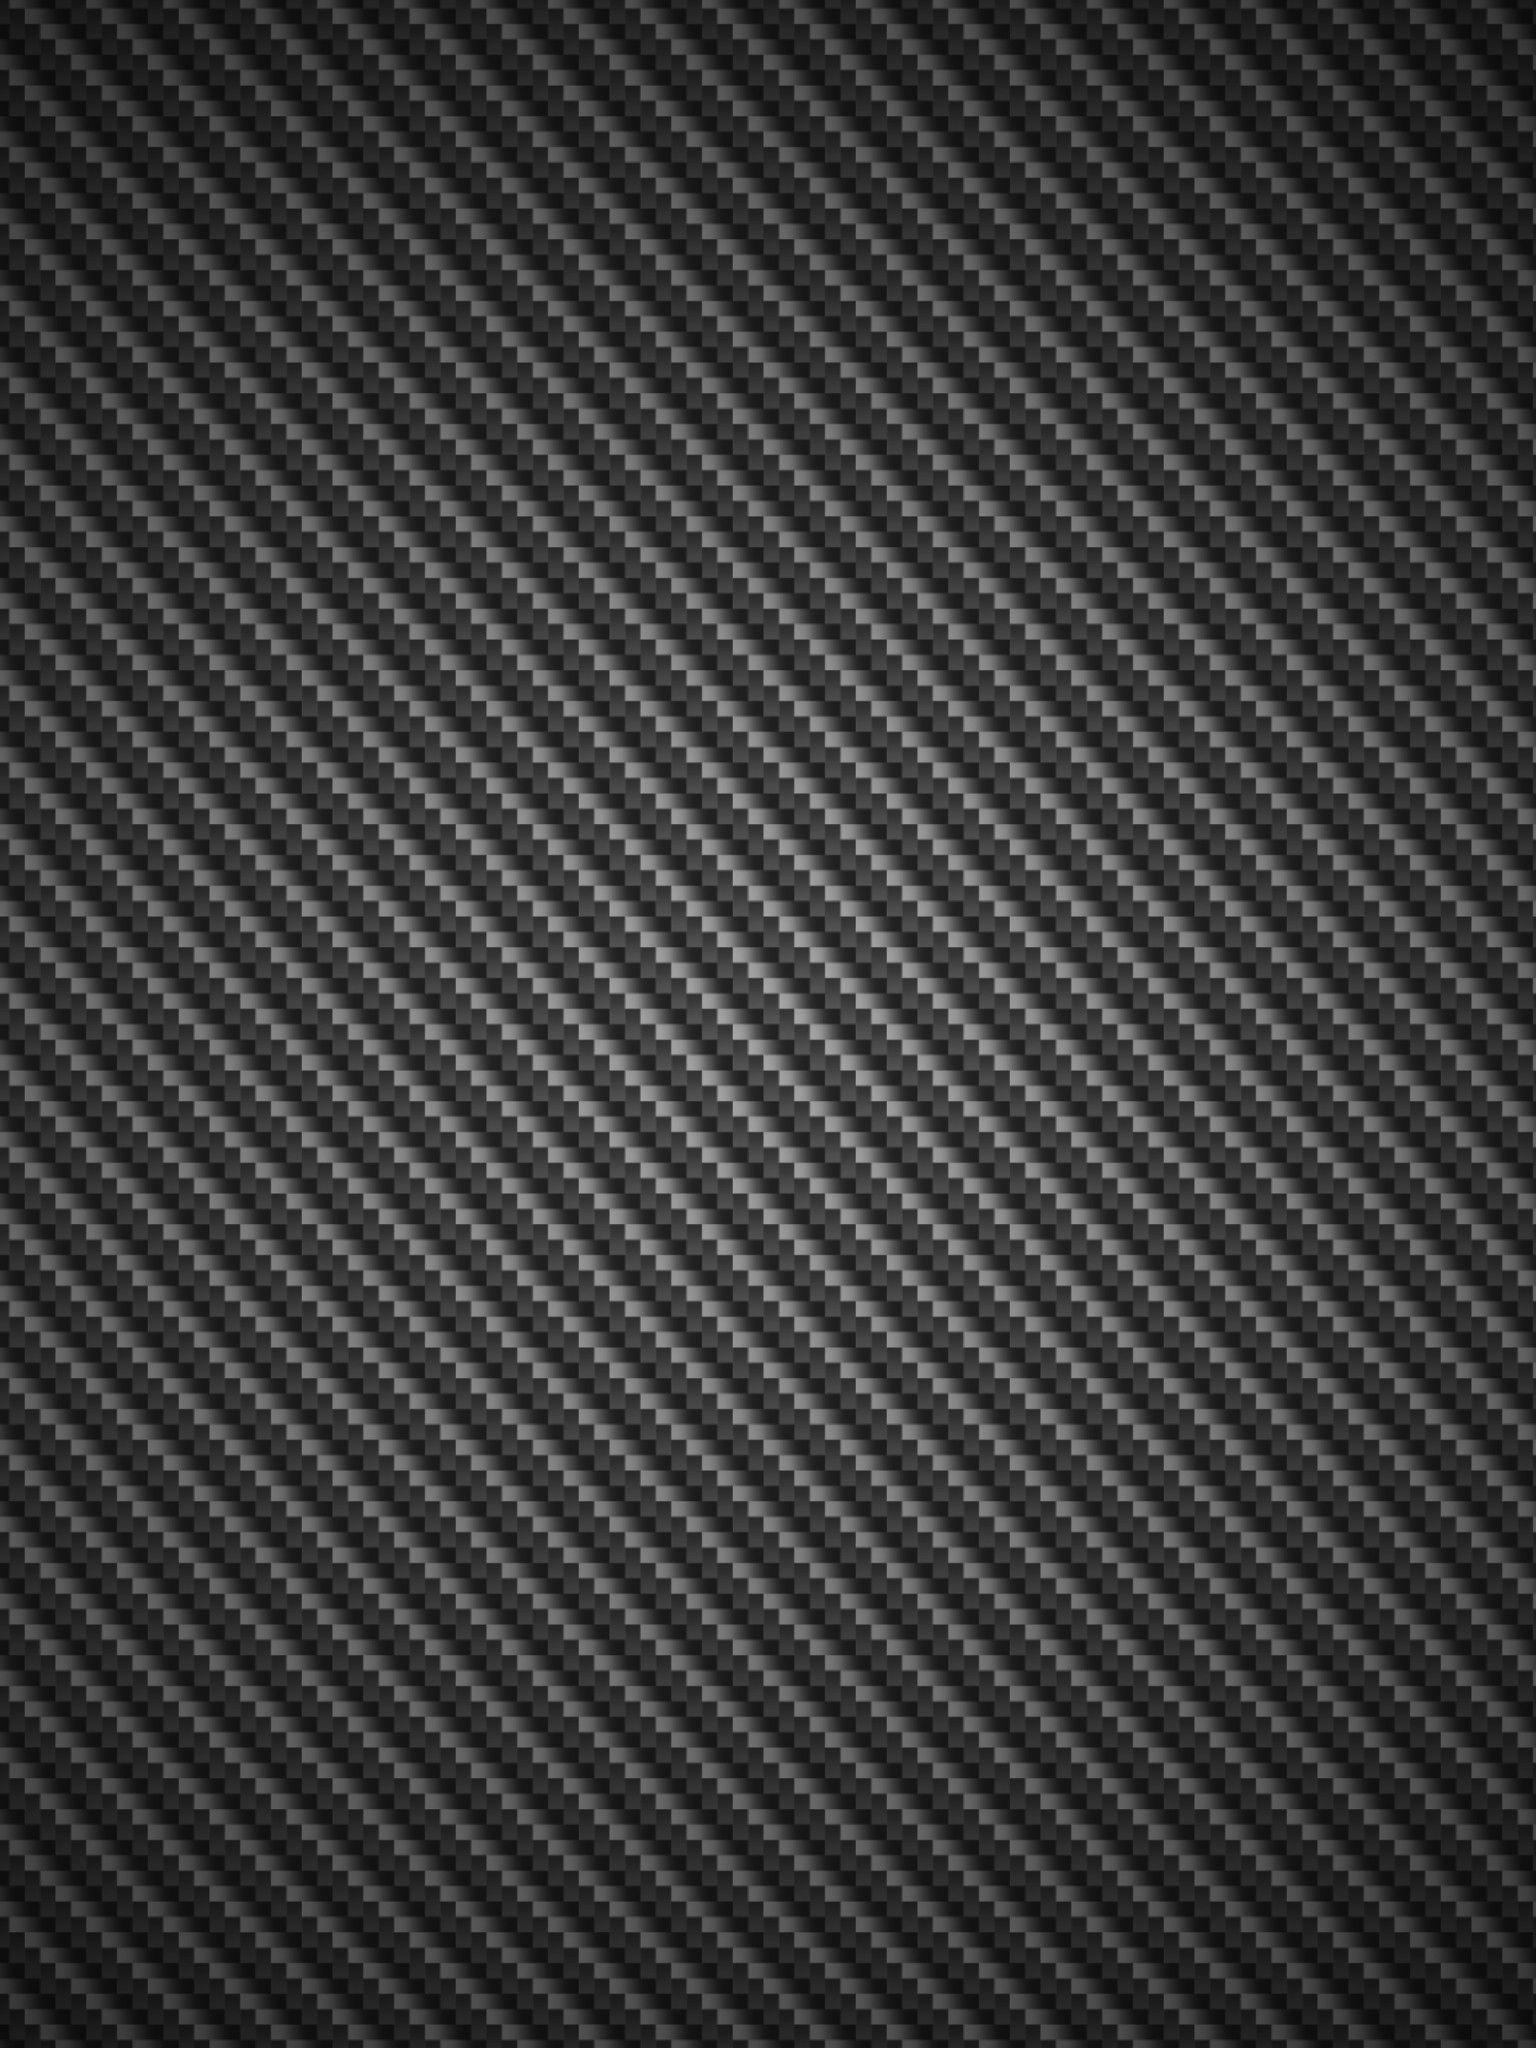 Carbon fibre wallpaper 1920x1080 - Real carbon fiber wallpaper ...